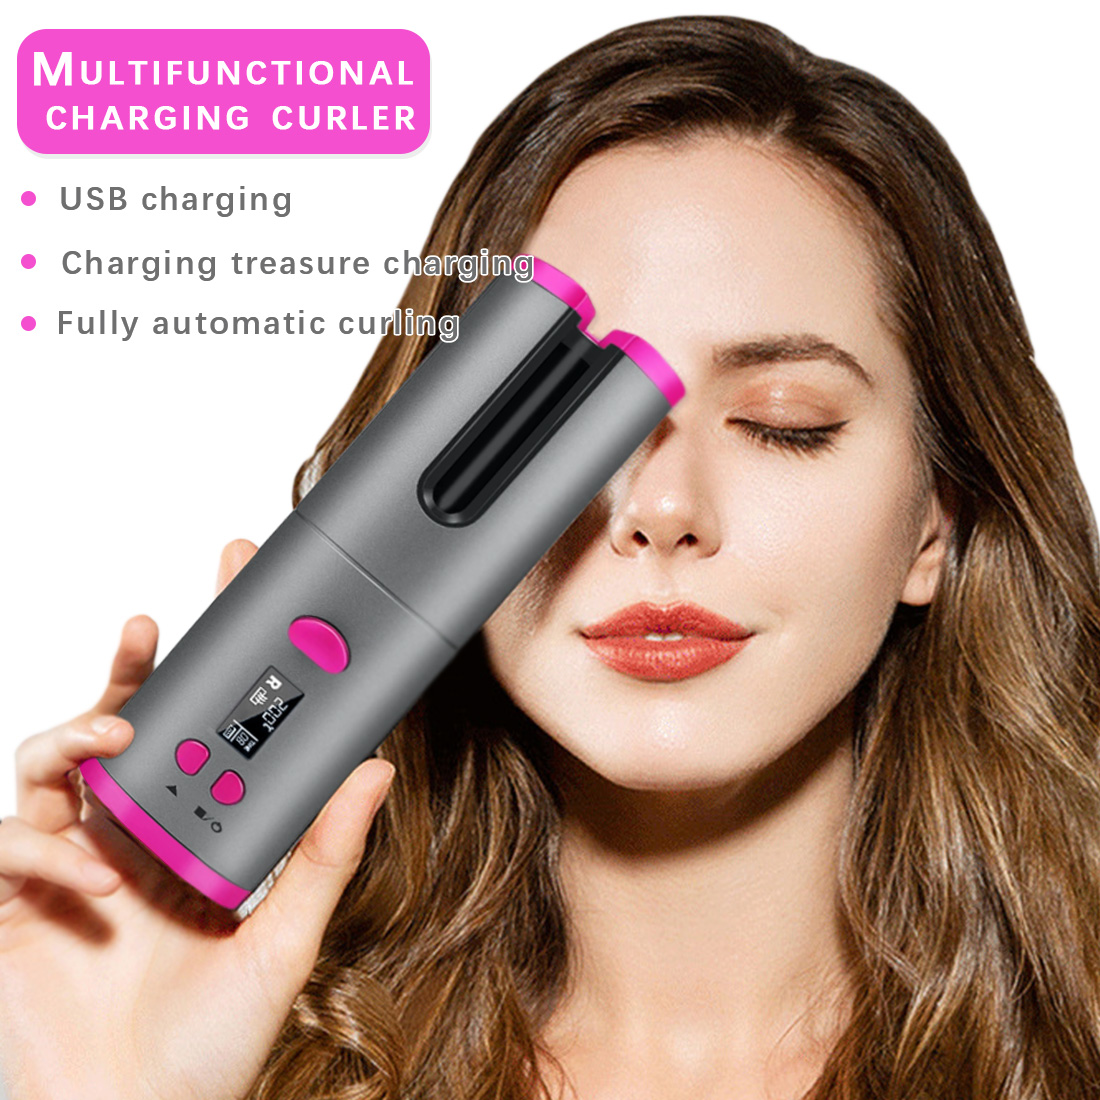 Cordless Auto Rotating Ceramic Hair Curler USB Rechargeable Curling Iron LED Display Temperature Adjustable Hair Straightener